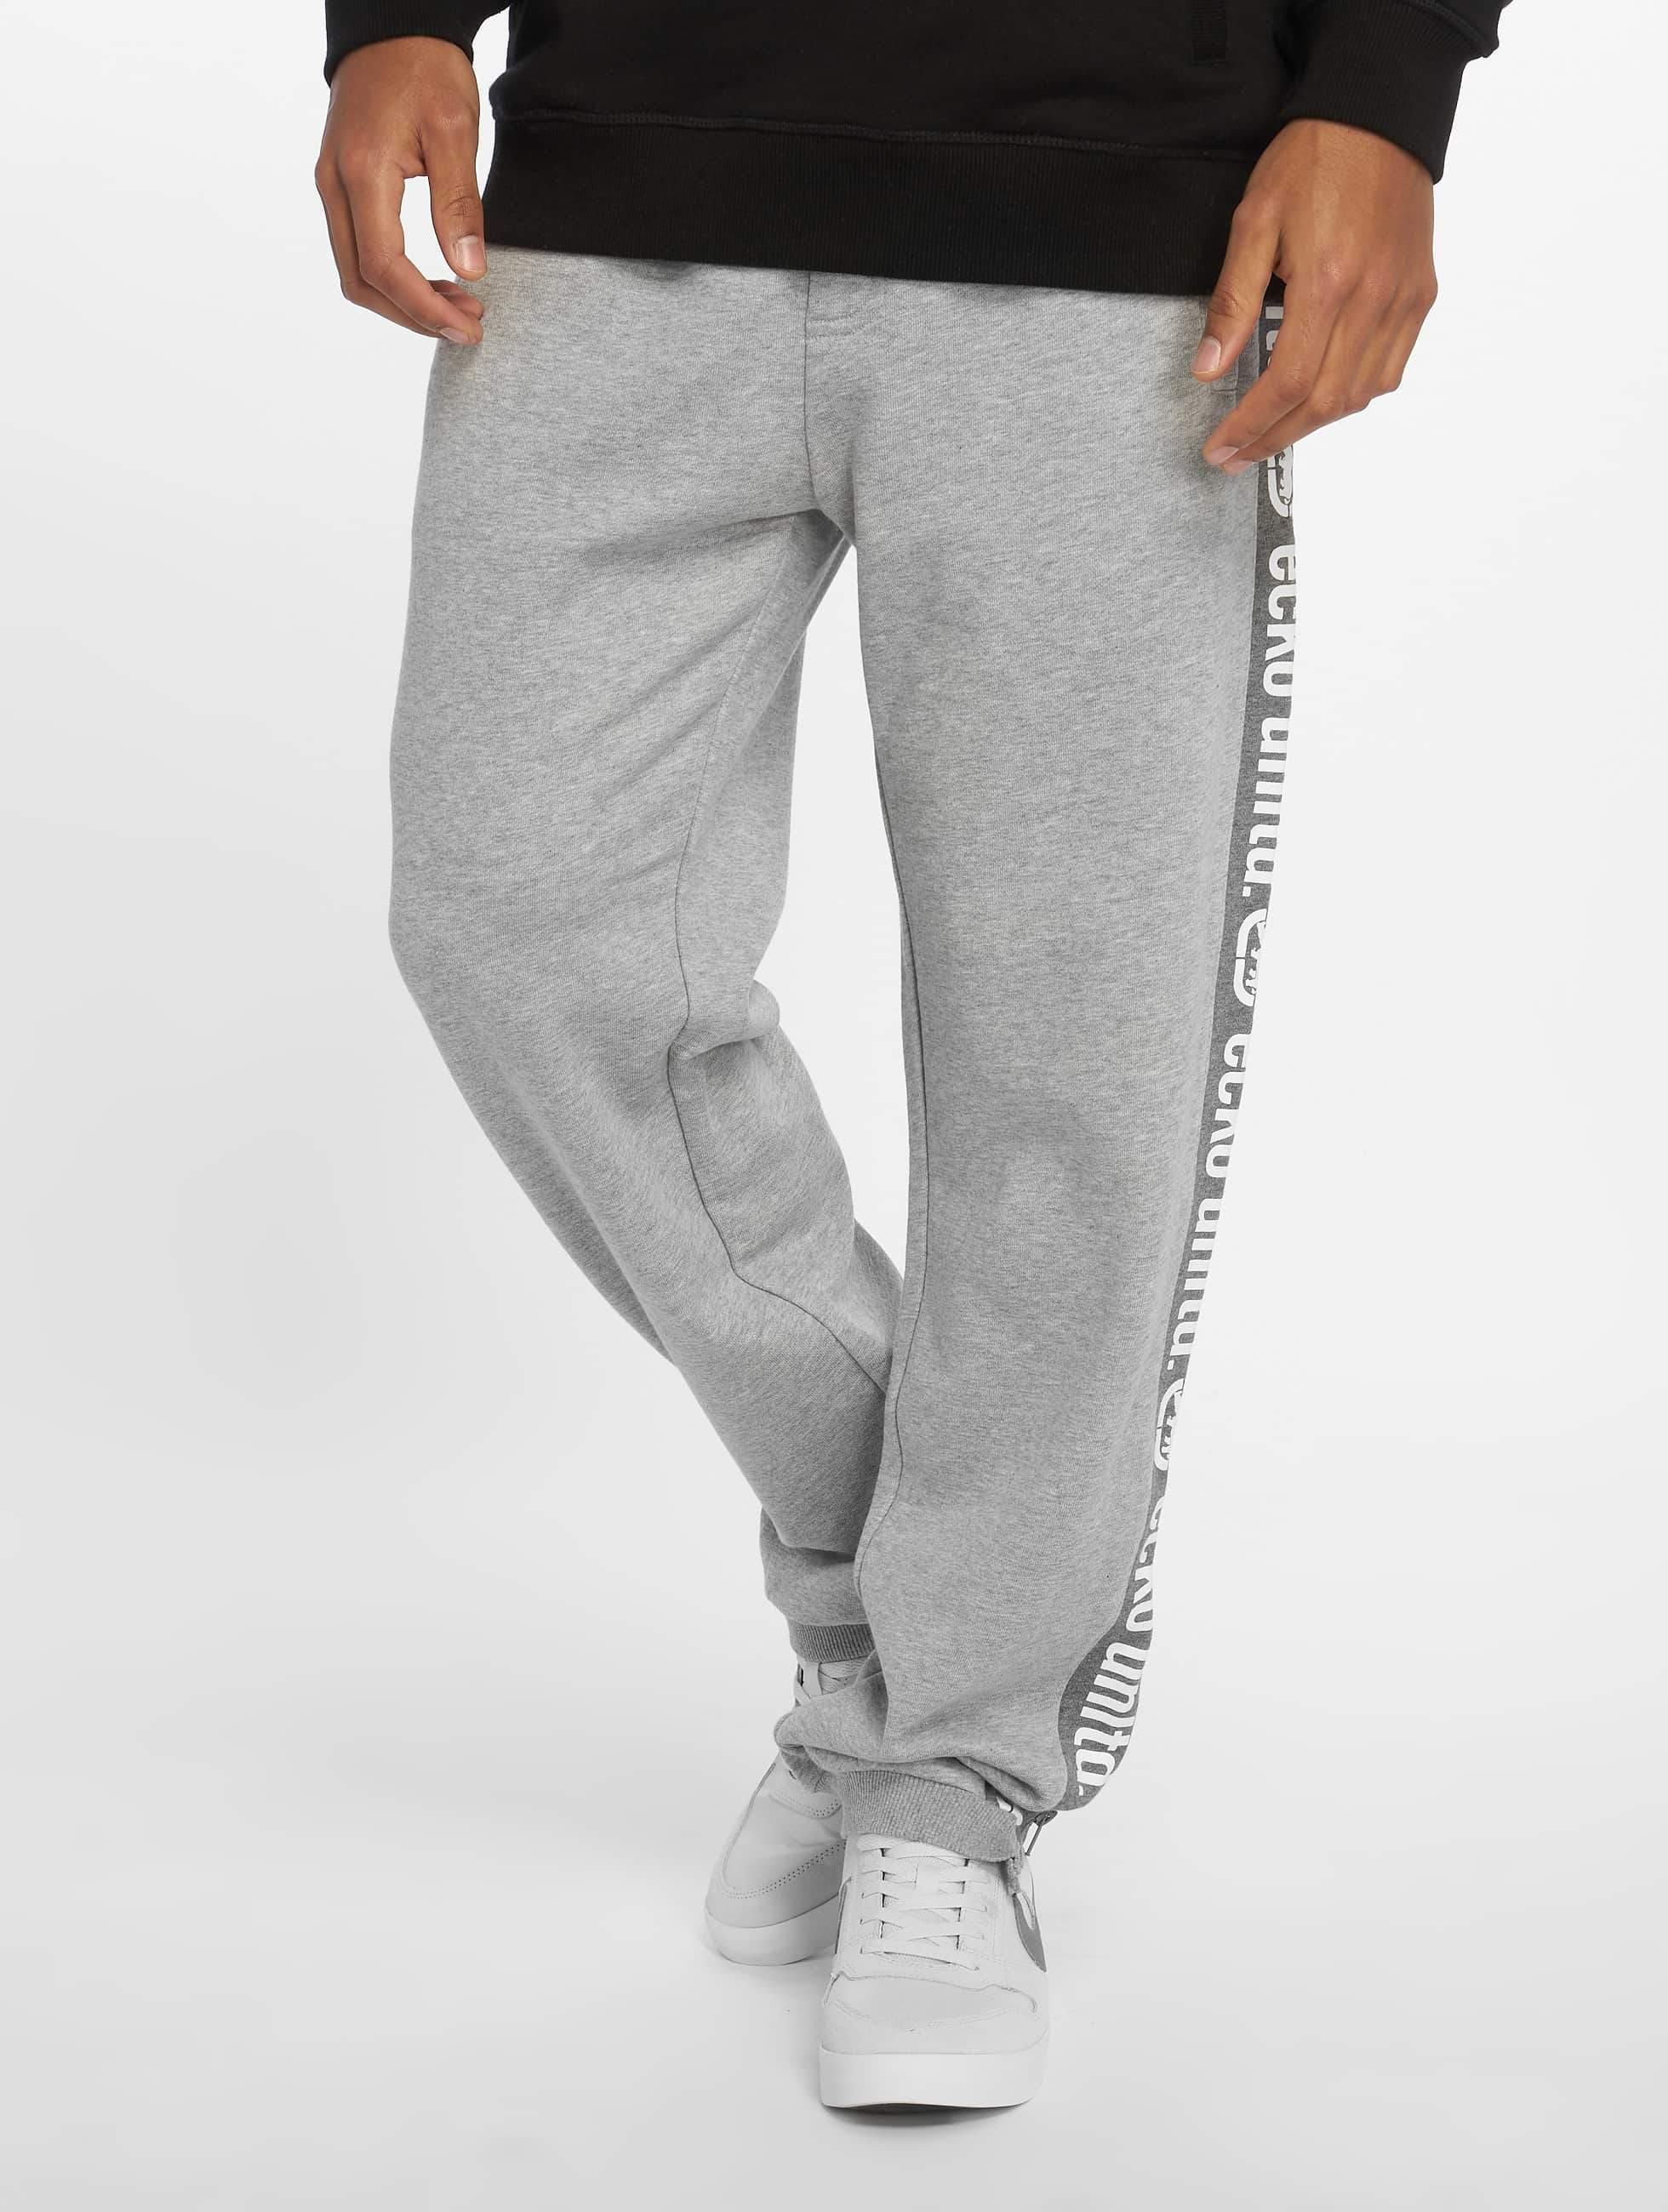 Ecko Unltd. / Sweat Pant Humphreys in grey M